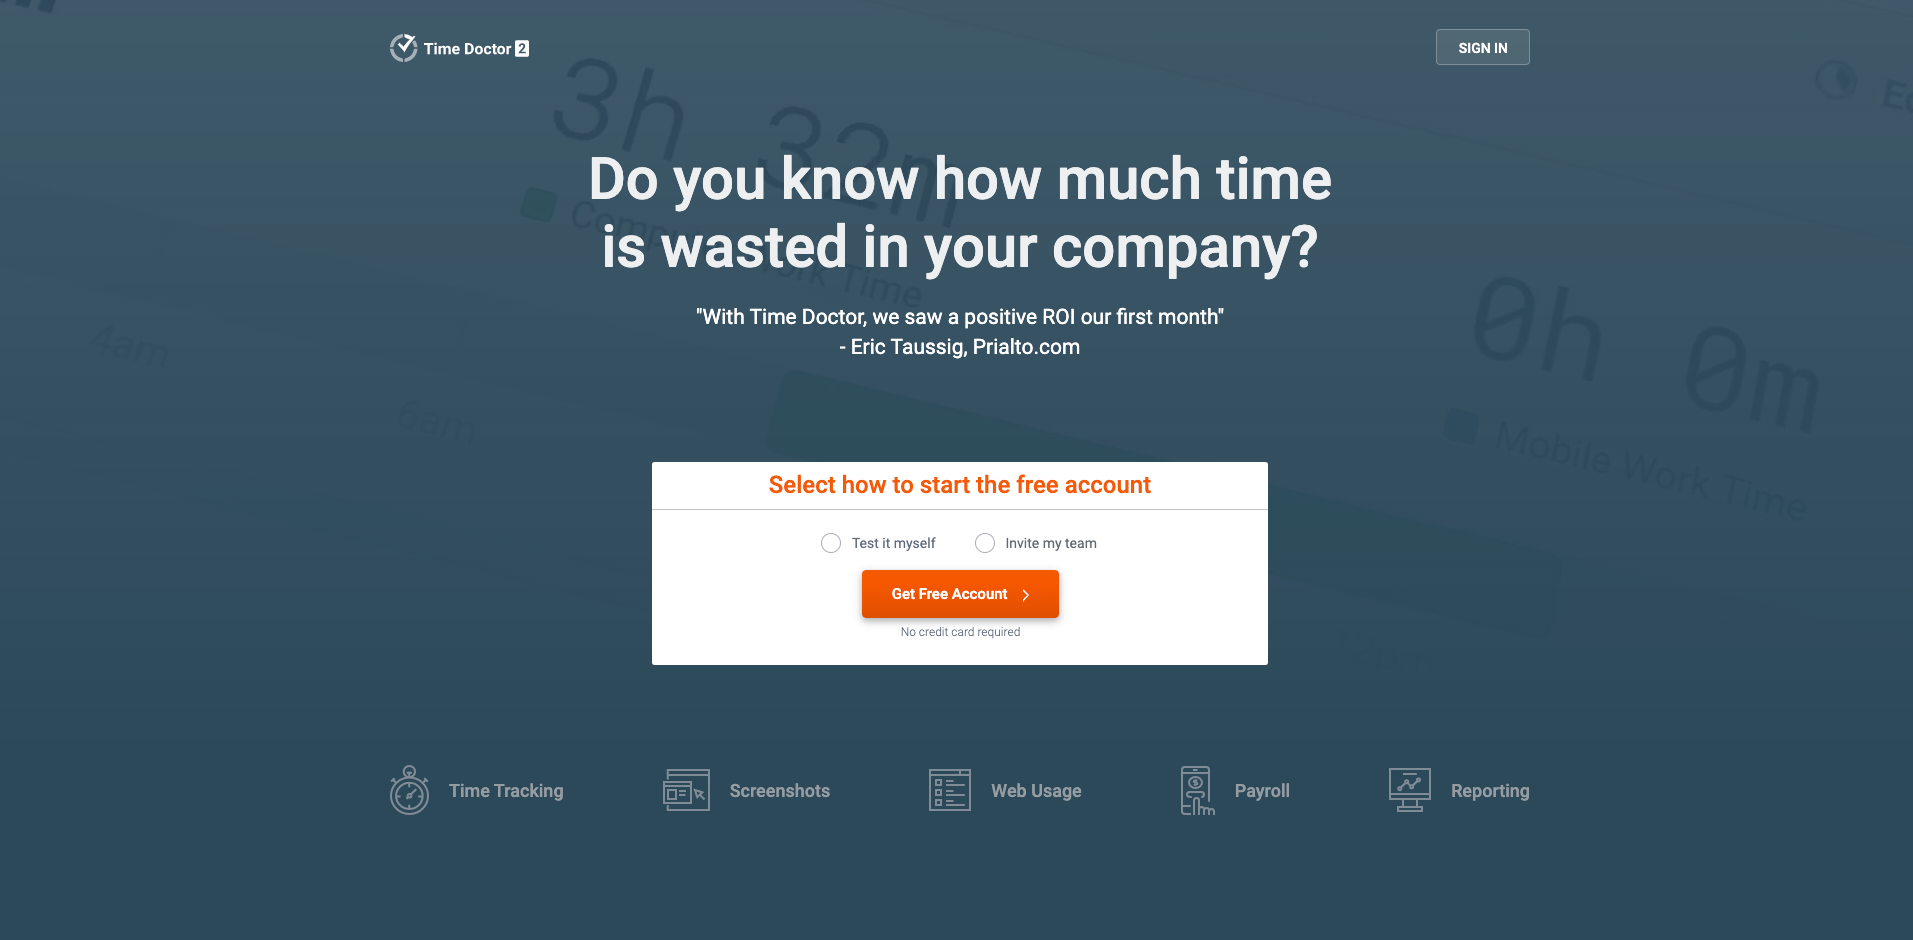 timedoctor homepage screenshot